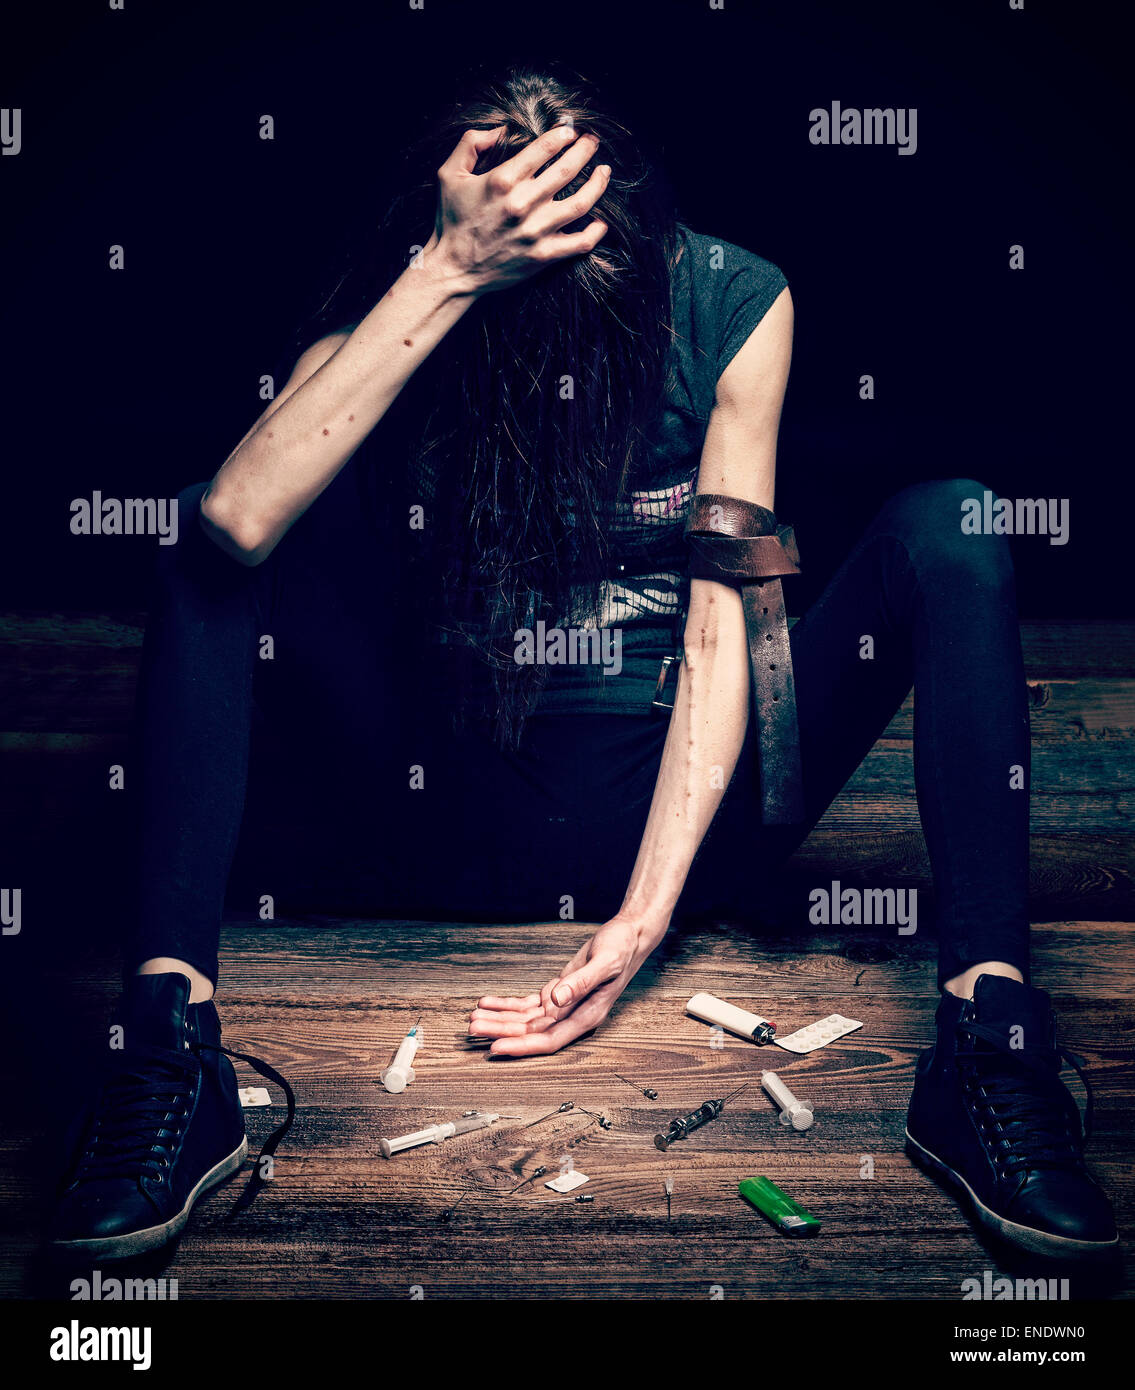 Grunge cross vintage filtered photo of a woman posing as drug addict, concept photo. - Stock Image